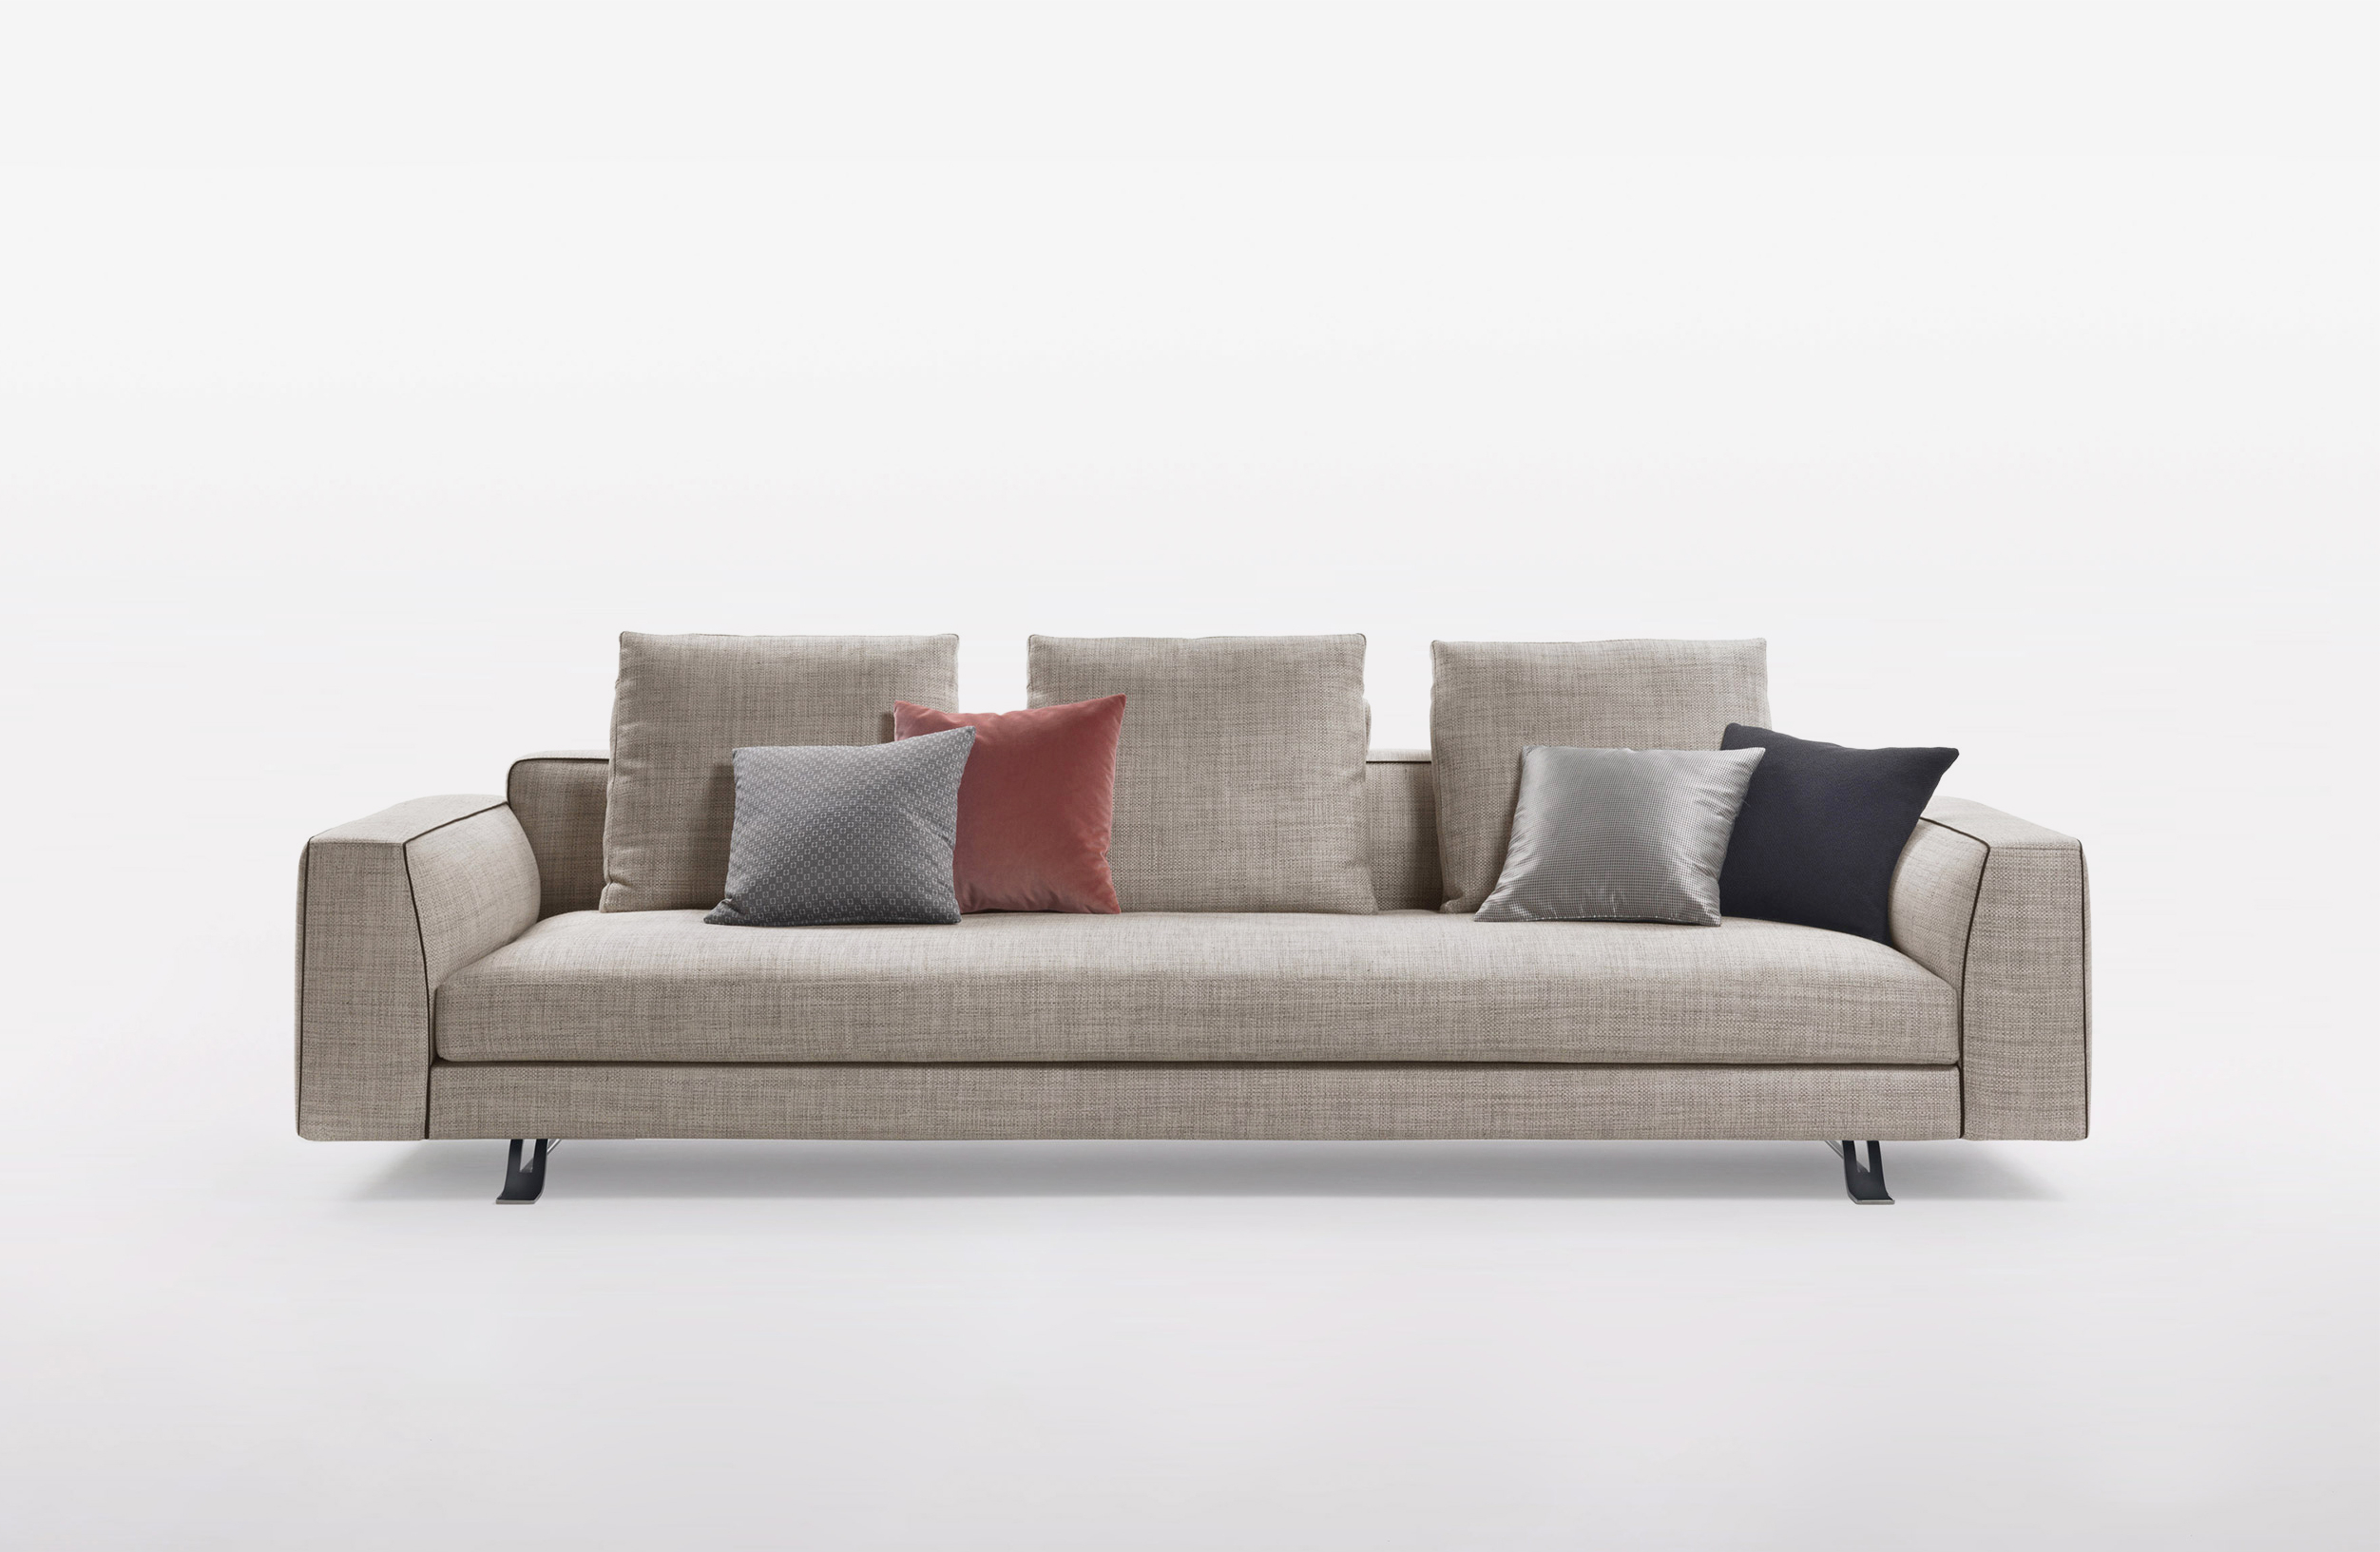 Burton – Toan Nguyen Pertaining To 2018 Burton Leather 3 Piece Sectionals With Ottoman (View 3 of 20)